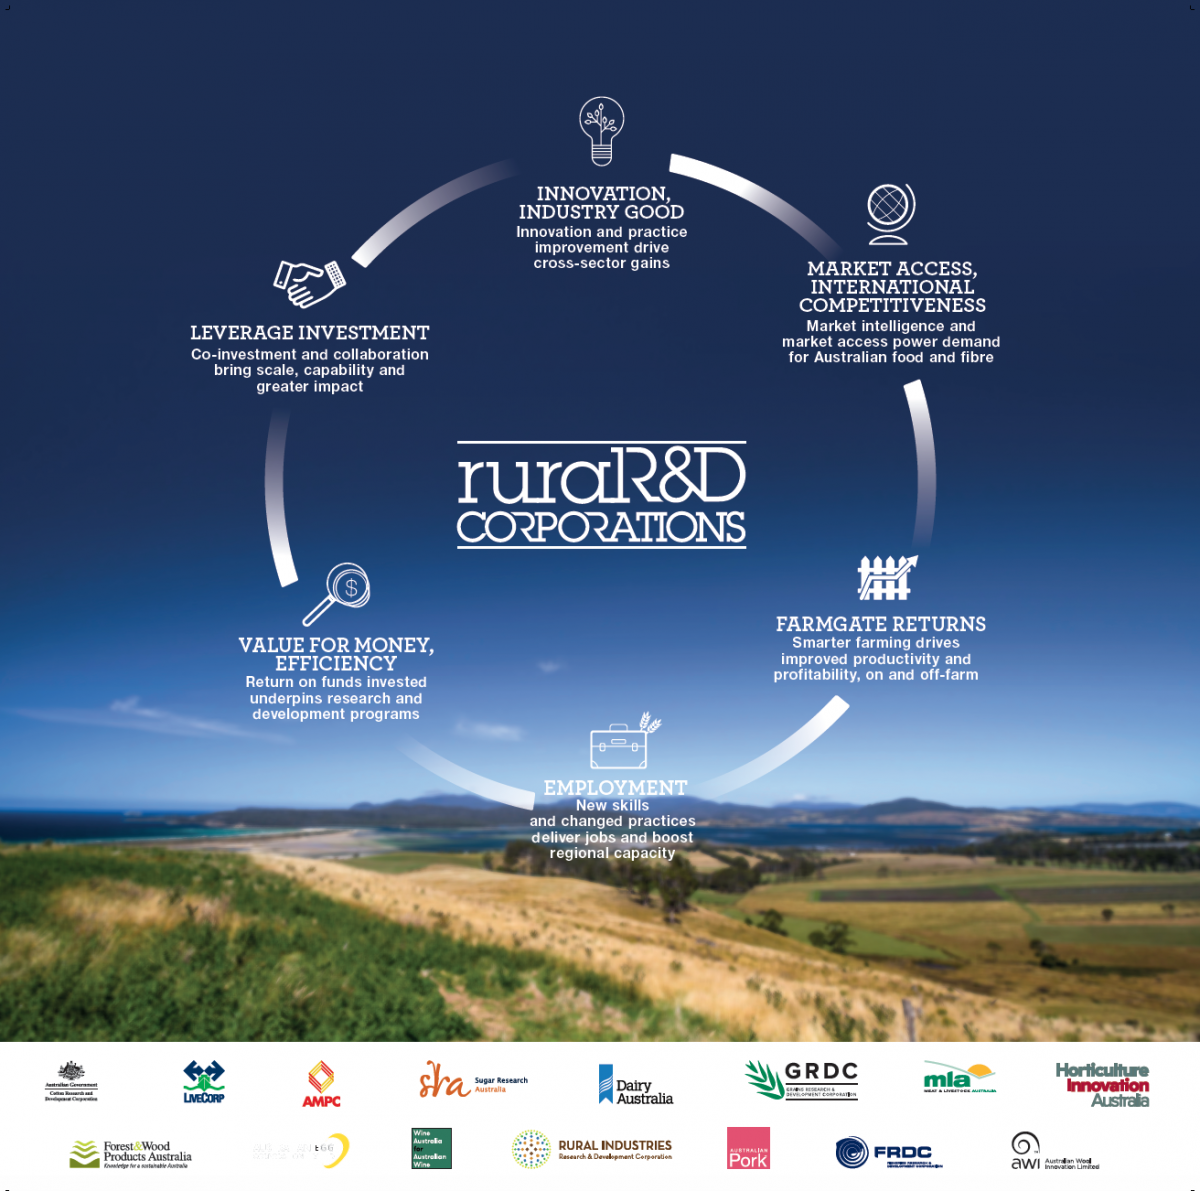 About crdc crdc for more on the rdcs and how were working together to deliver benefits for you visit the council of rdcs website ruralrdcperformance link falaconquin